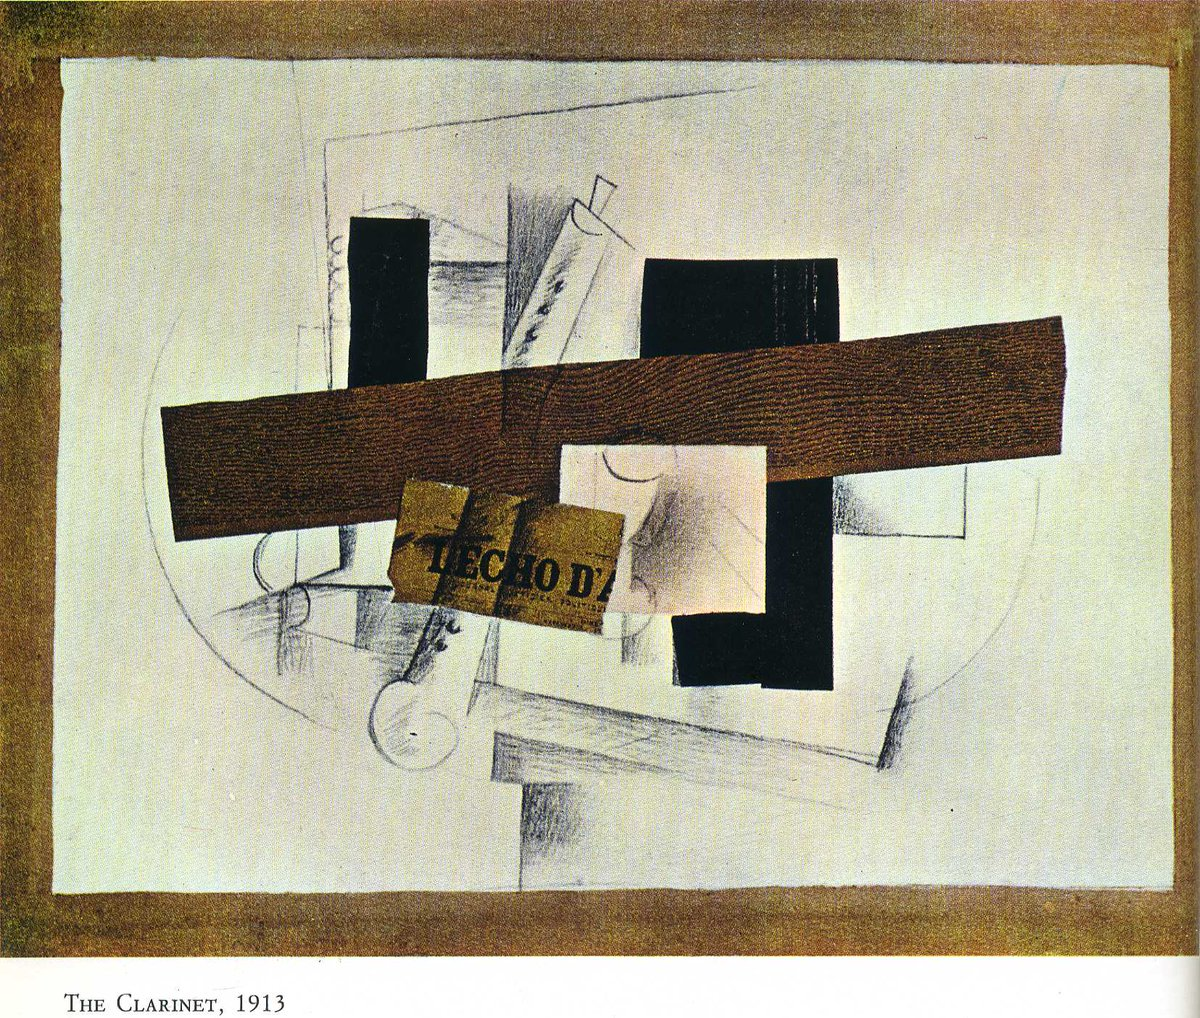 The Clarinet (Tenora), 1913 #syntheticcubism #frenchart<br>http://pic.twitter.com/2ncDbLXO86